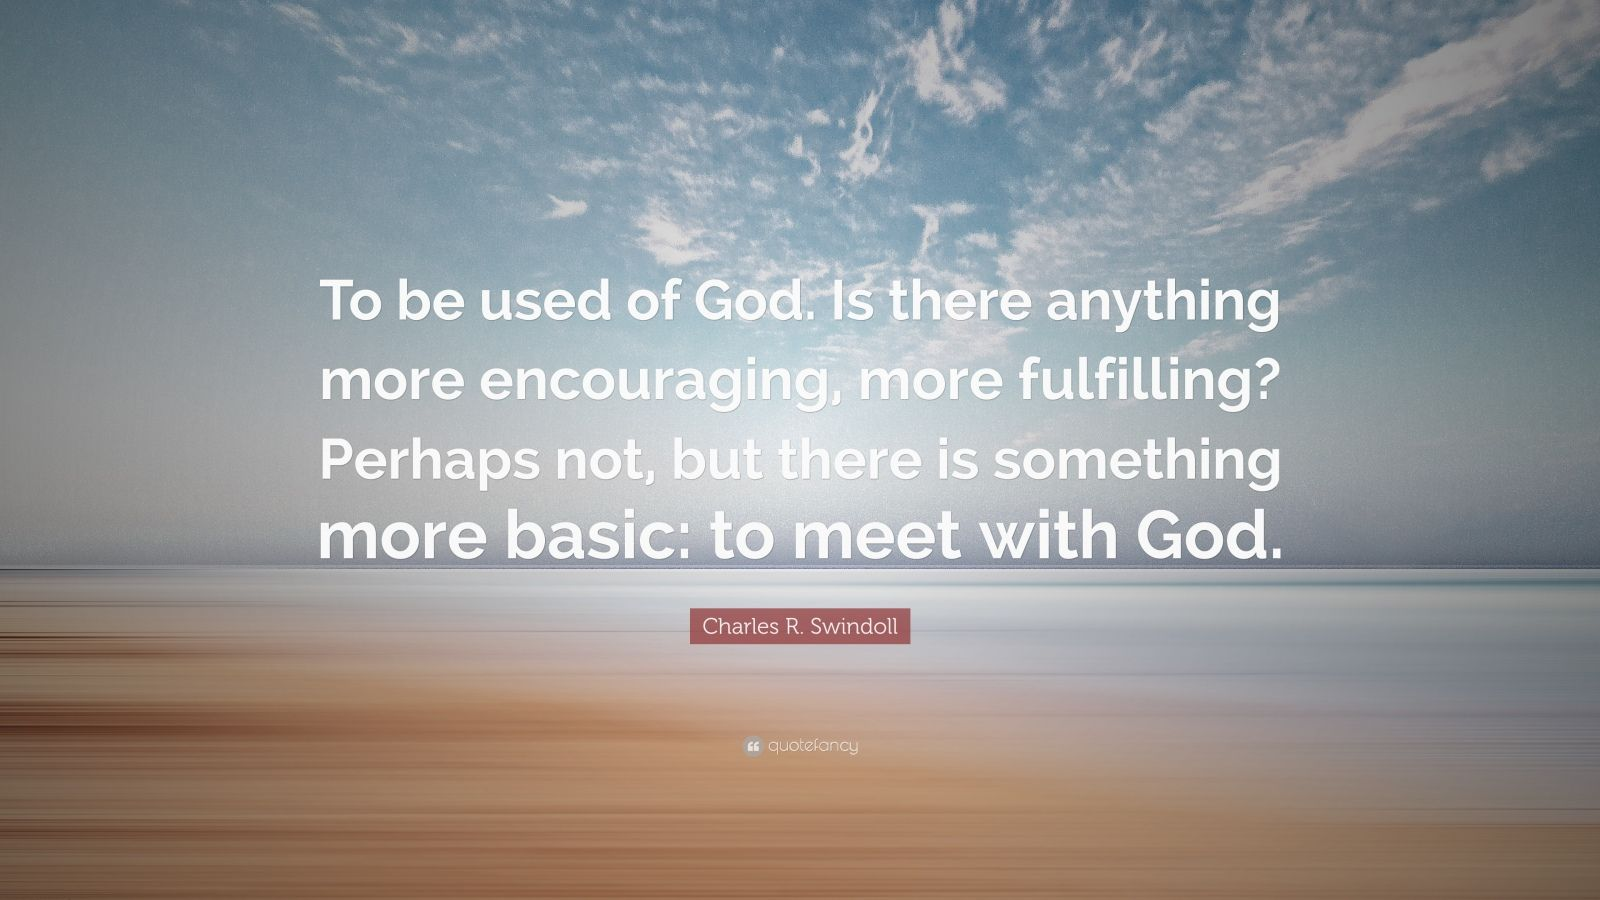 """Charles R. Swindoll Quote: """"To be used of God. Is there anything more encouraging, more fulfilling? Perhaps not, but there is something more basic: to meet with God."""""""